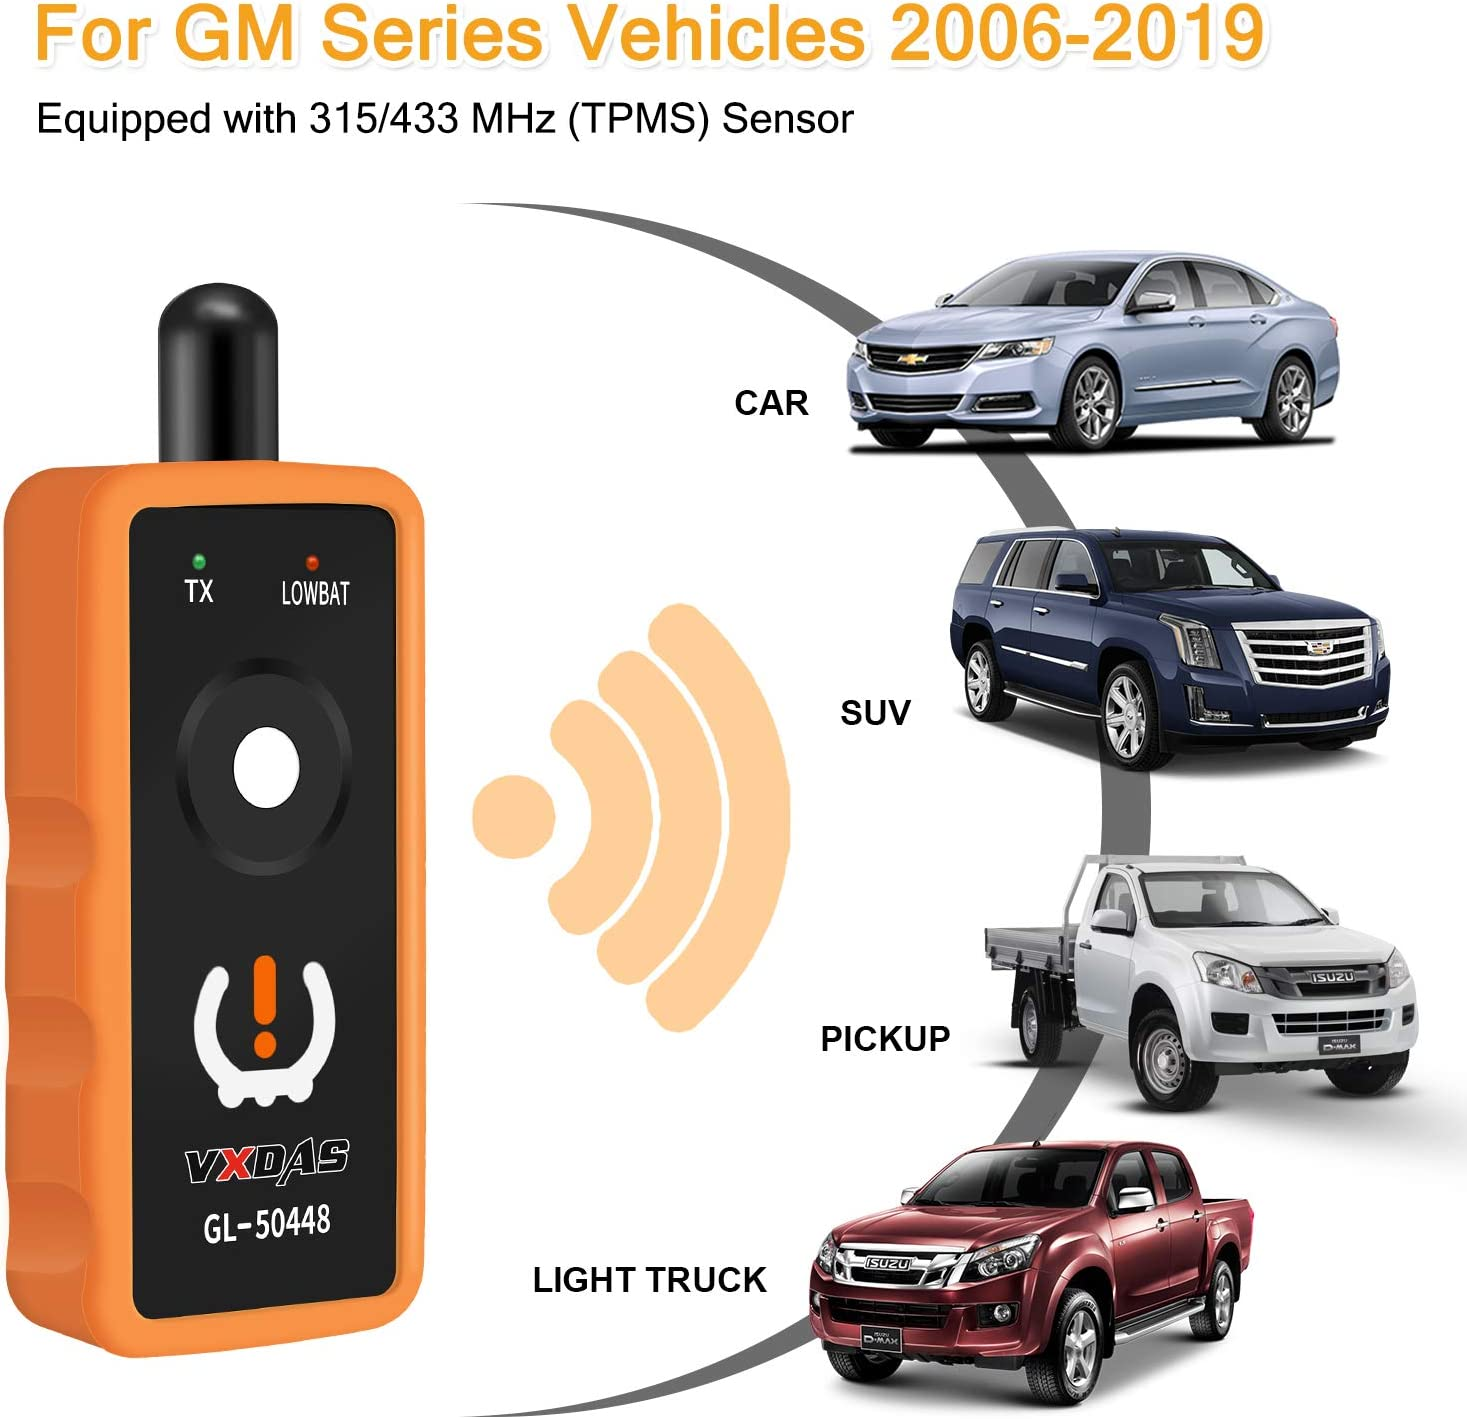 Arozk TPMS Relearn Tool for GM Tire Pressure Monitor System Sensor Programming Training Activation Tool OEC-T5 GL-50448 Auto Reset Tool for GM Series Vehicles 2006-2019